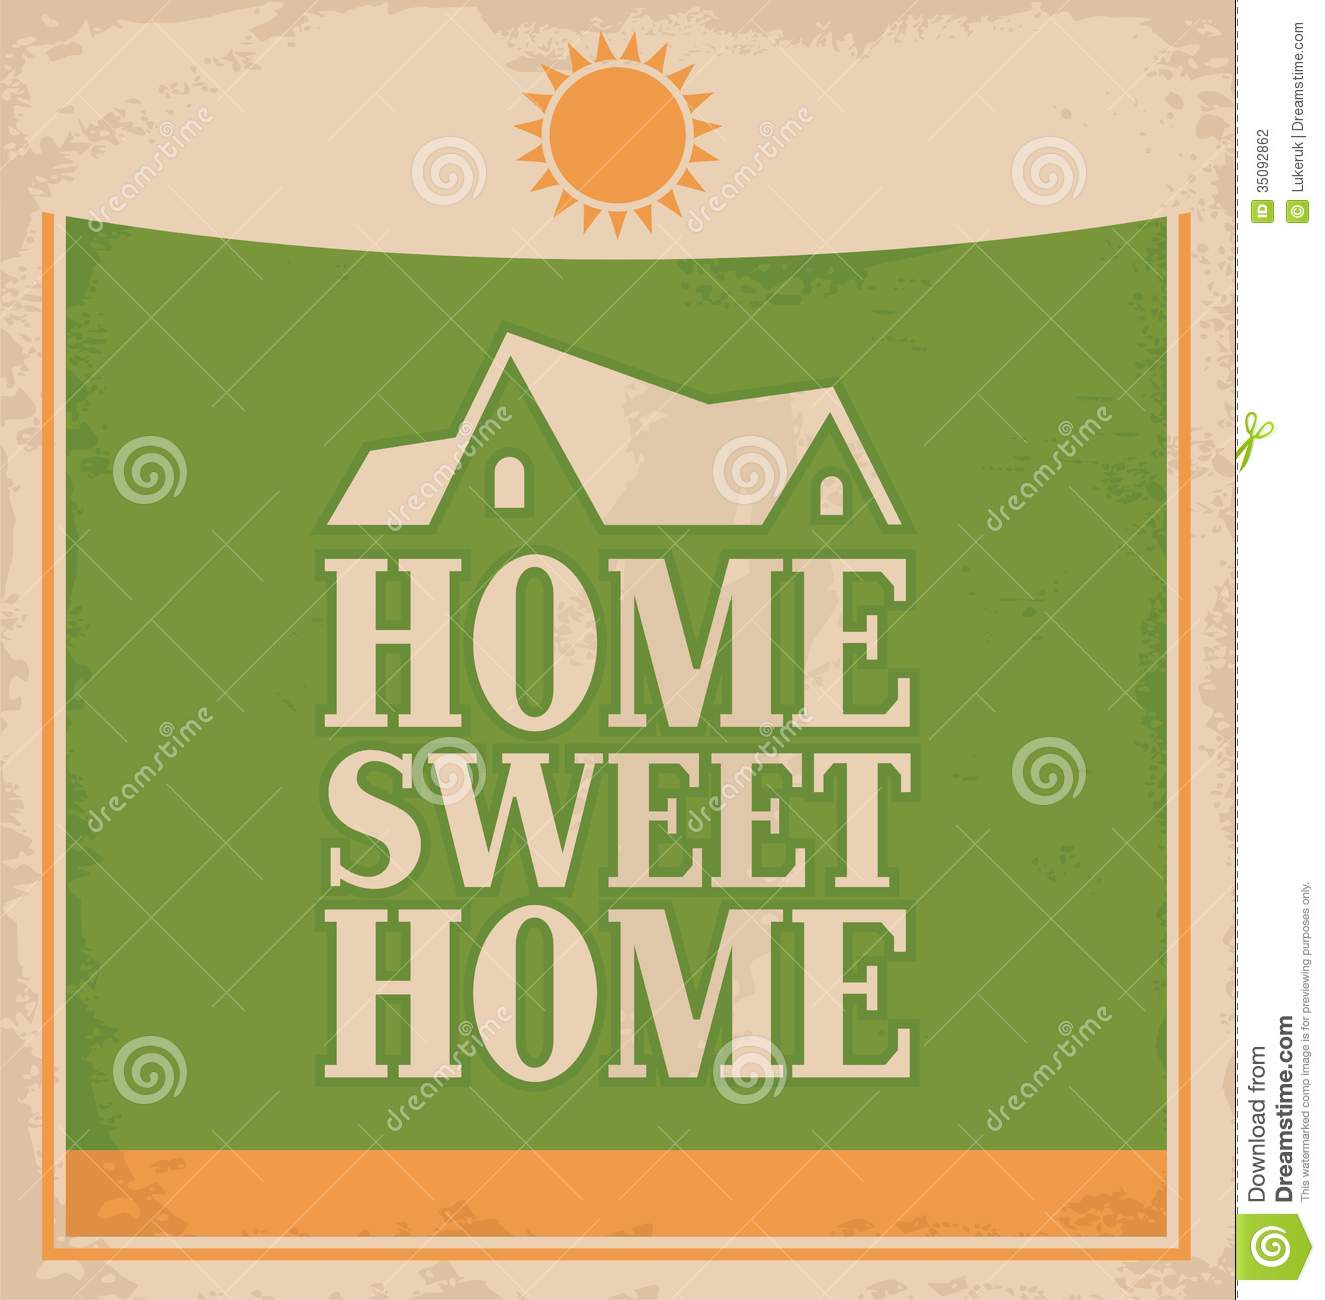 Retro poster design stock photography image 35092862 - Home sweet home designs ...